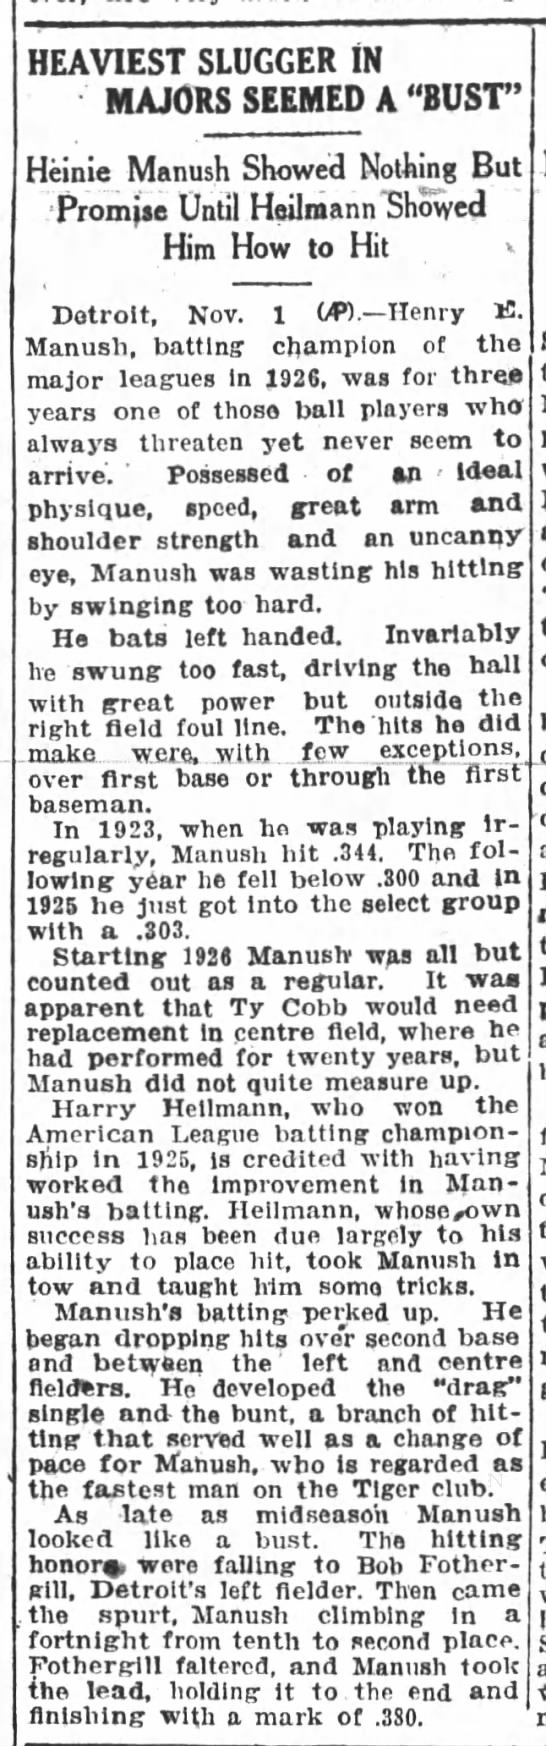 Heinie Manush Showed Nothing But Promise Until Heilmann Showed Him How To Hit -